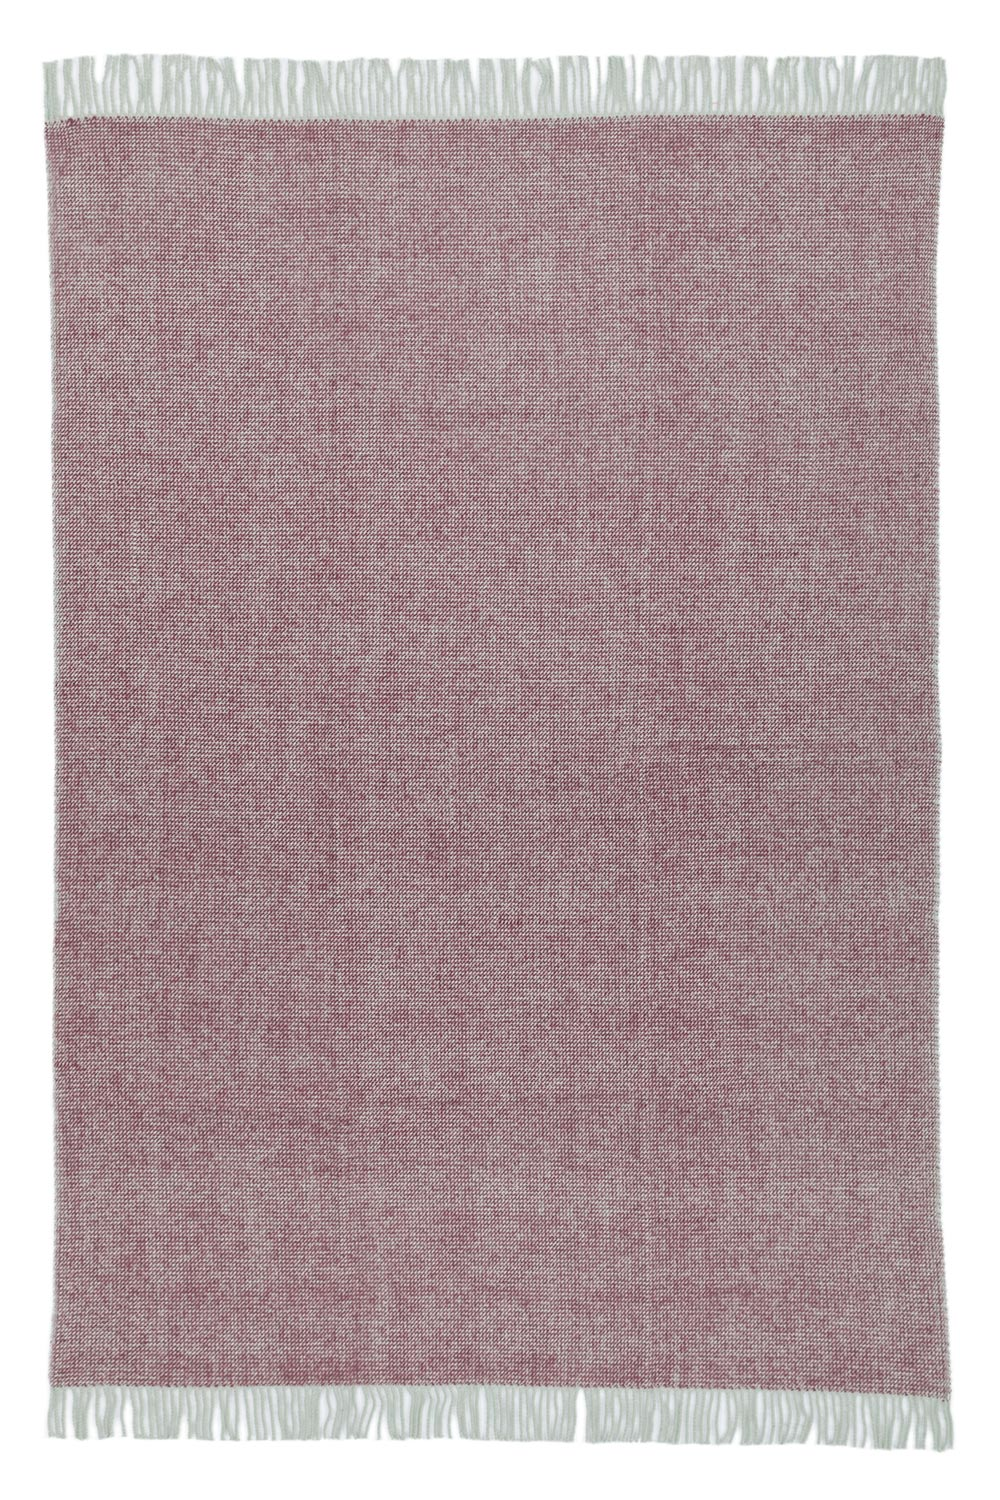 wool blanket in plum purple color with fringes, spread out